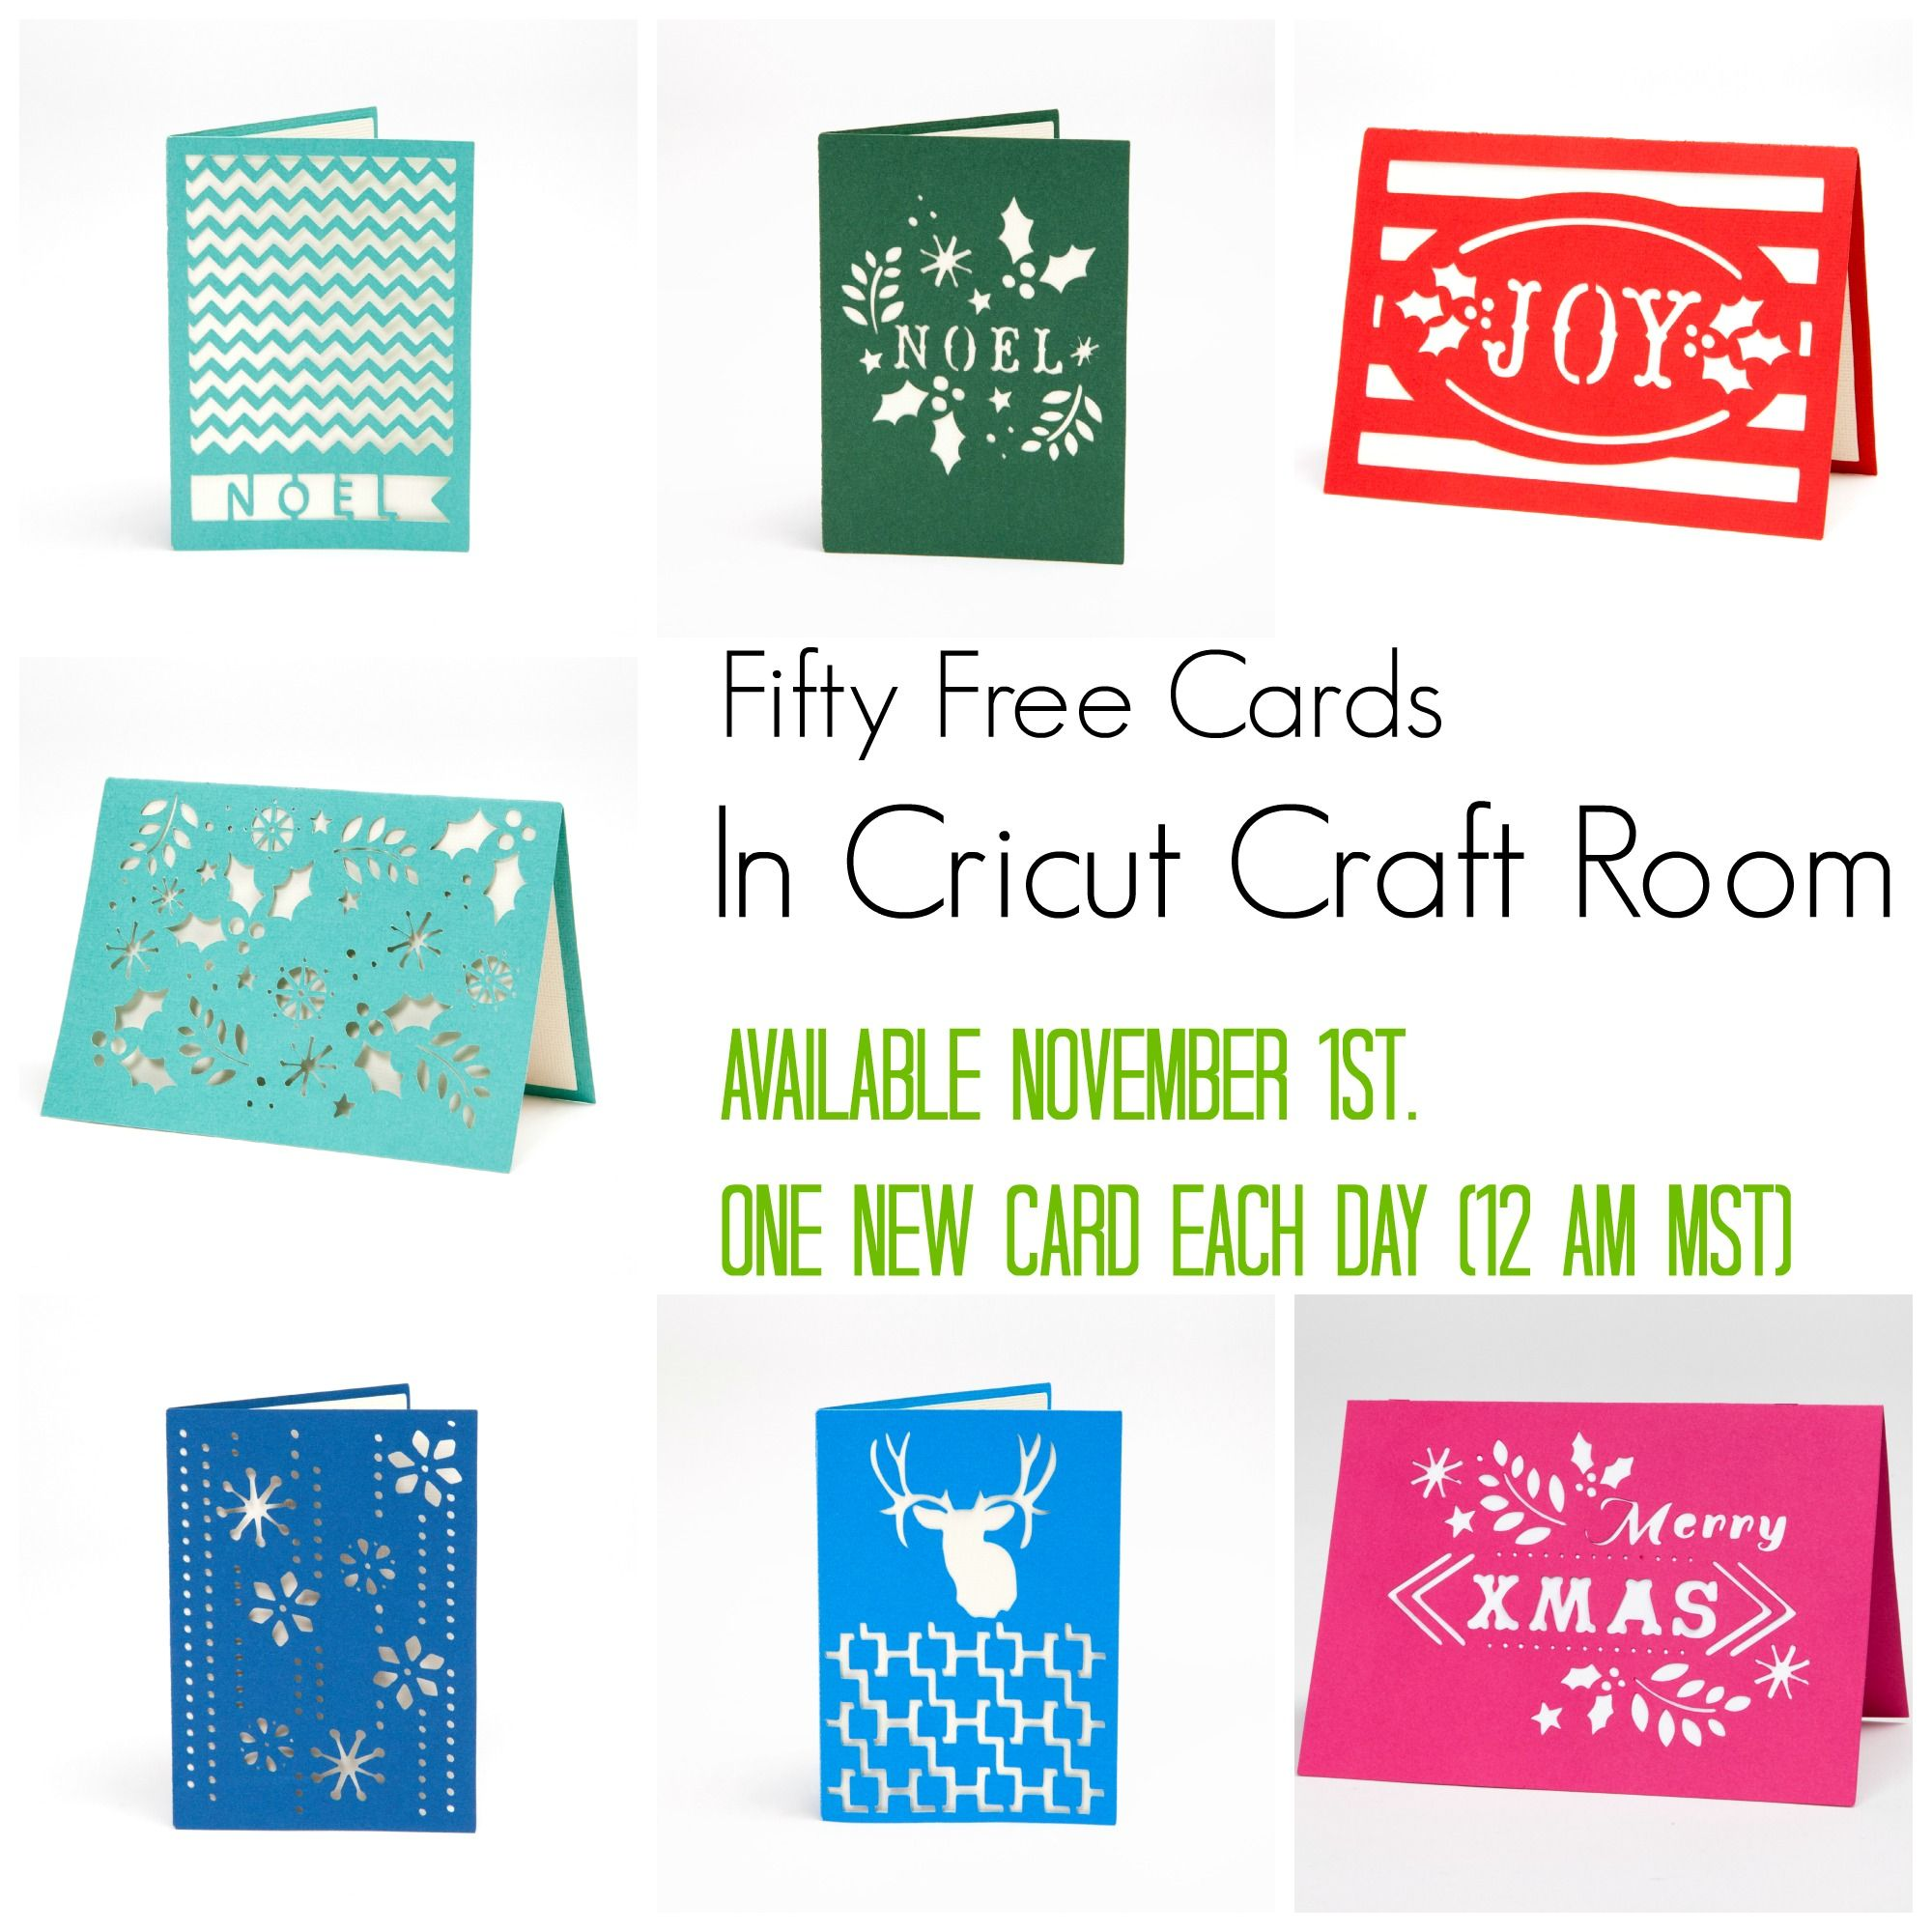 Just in time for the holiday Free Cricut Craft Room Cards Week